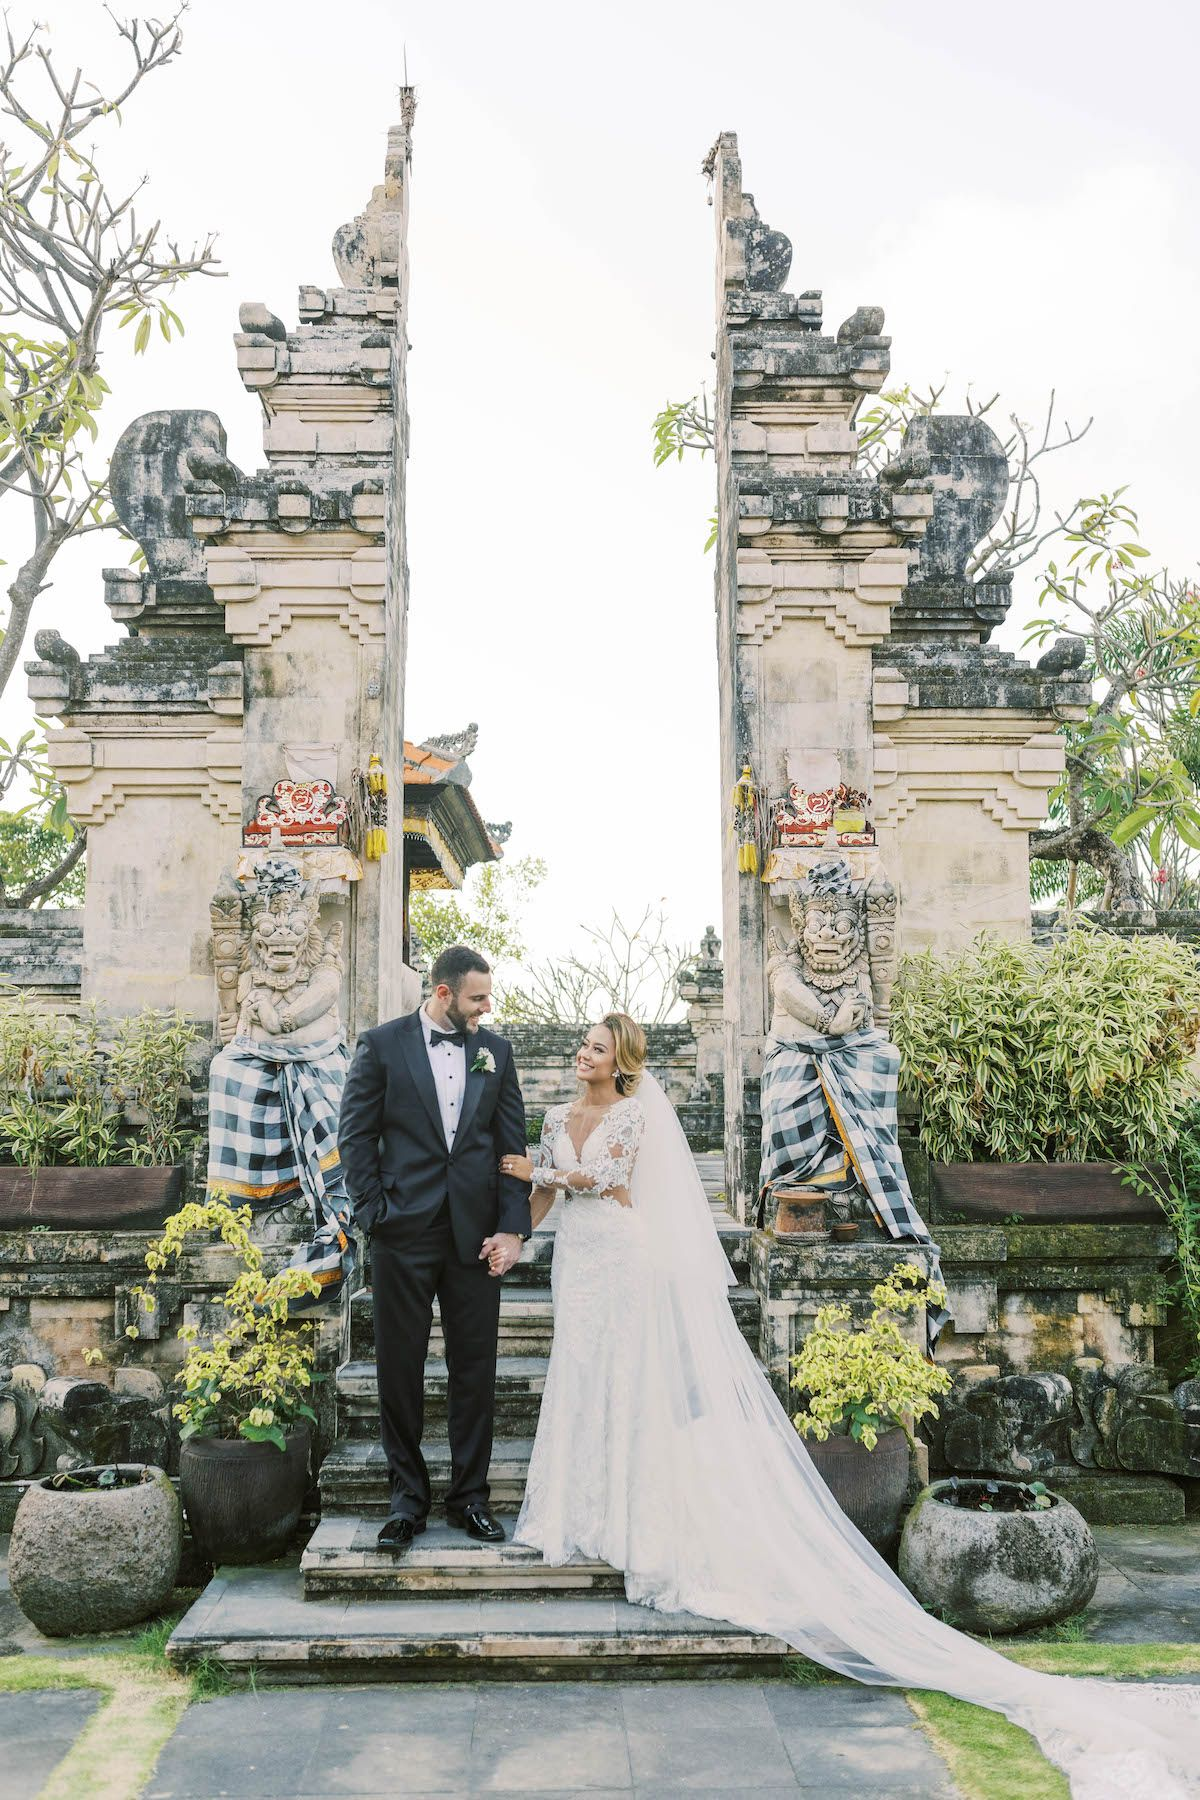 Shelica and Steven's wedding in Bali in 2020 (With images